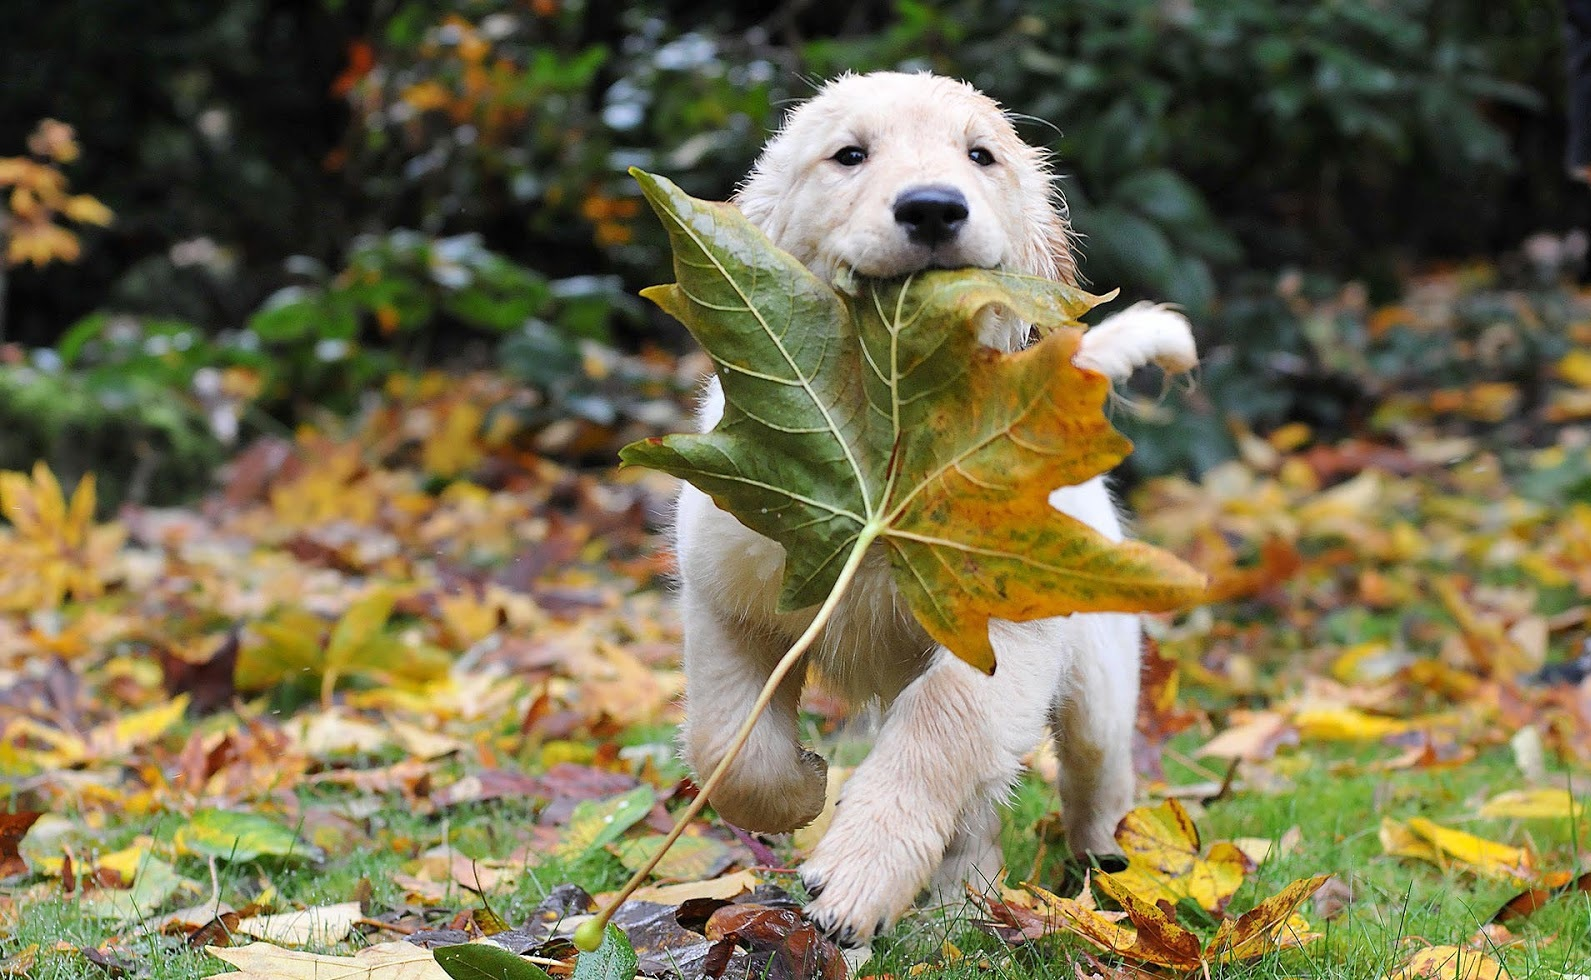 autumn-wallpaper-with-golden-retriever-and-leaves-barbaradashwallpapers.com_.jpg